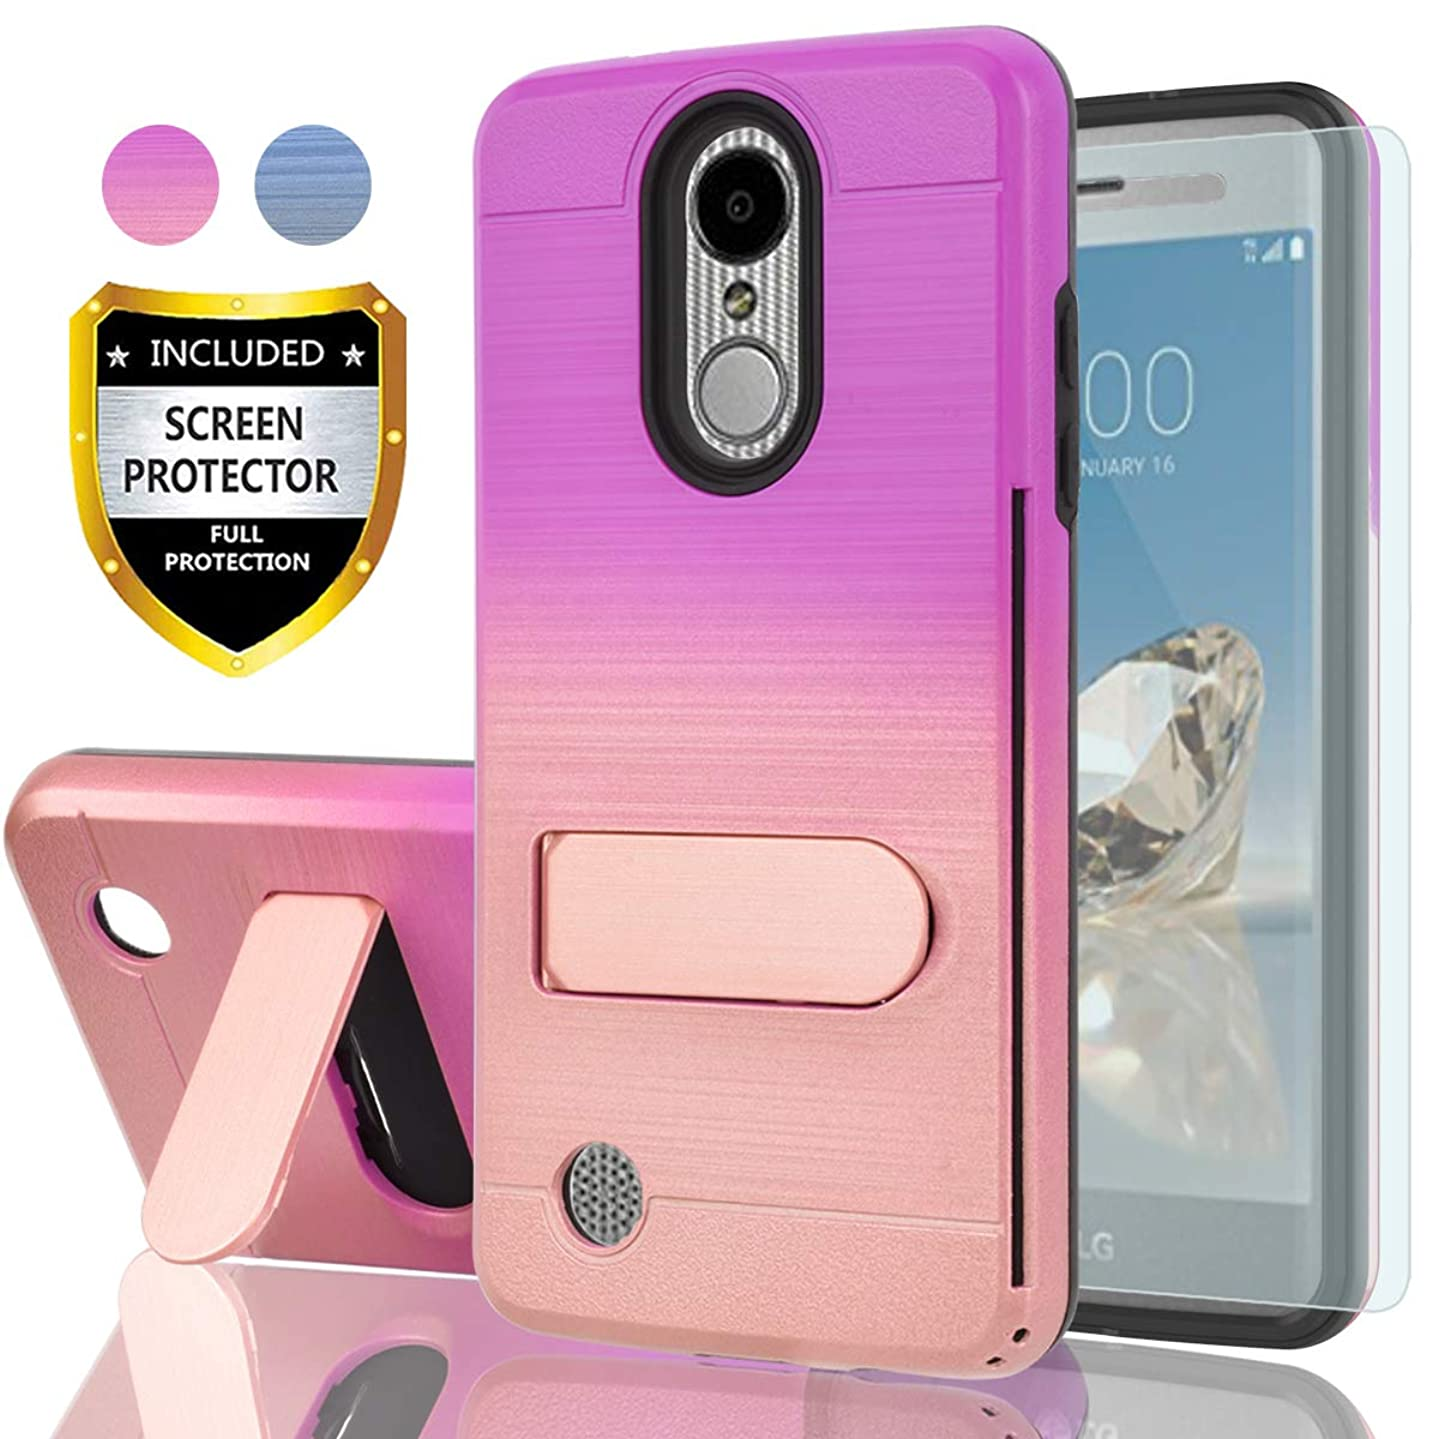 AYMECL LG Aristo Case(MS210),LG K8 2017 Case,Risio 2/Rebel 2 LTE/Phoenix 3/LG Fortune Case with HD Screen Protector,[Card Slots Holder] TPU Gradient Color Case for LG LV3-GC Purple&Rose Gold